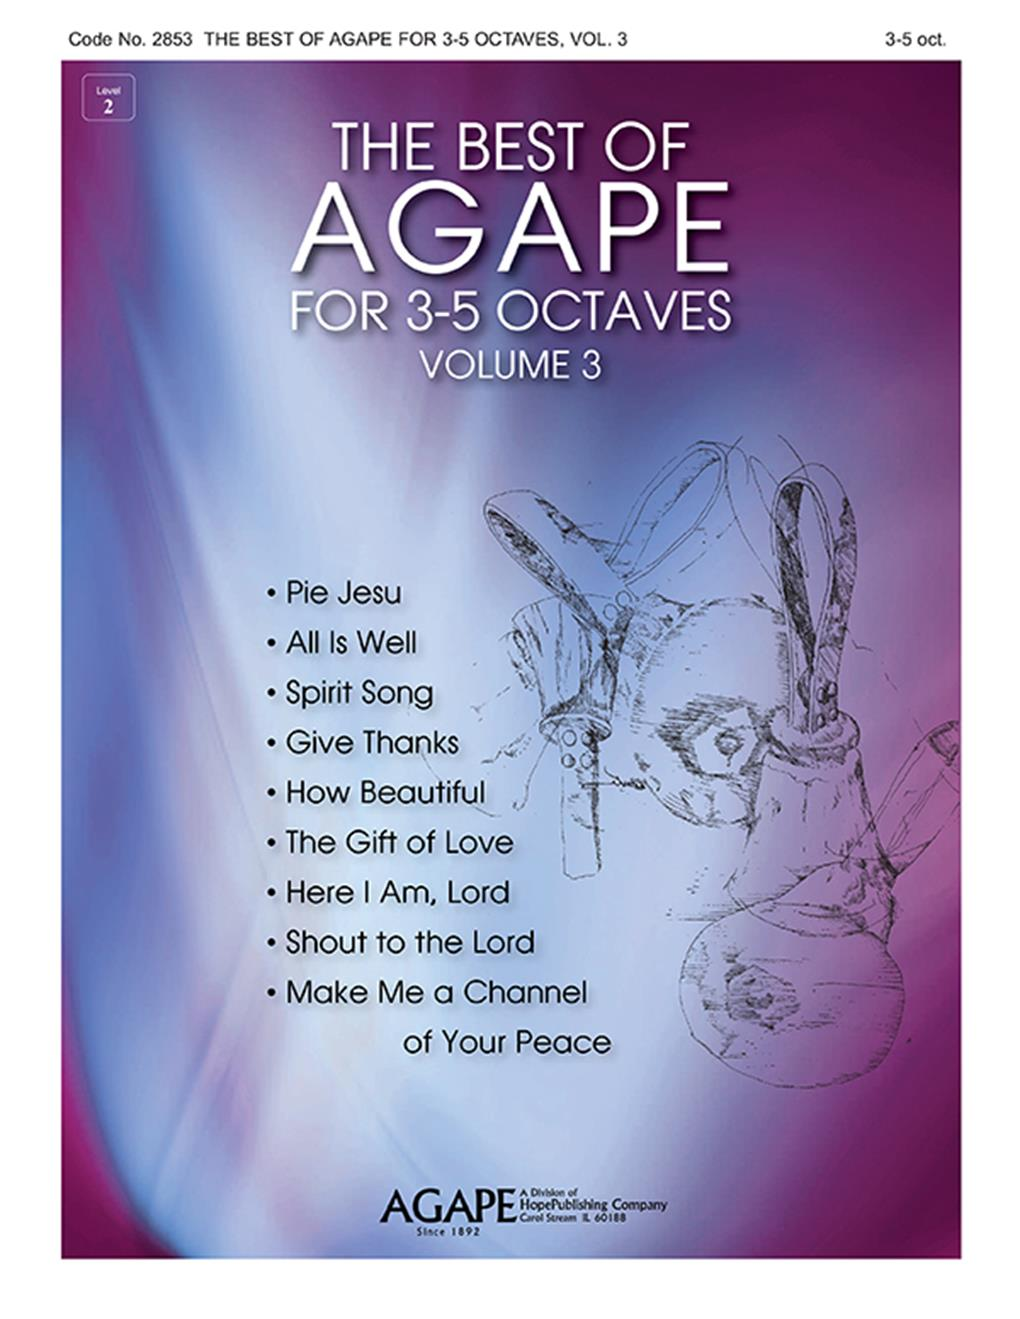 The Best of Agape for 3-5 Octaves Vol. 3 Cover Image